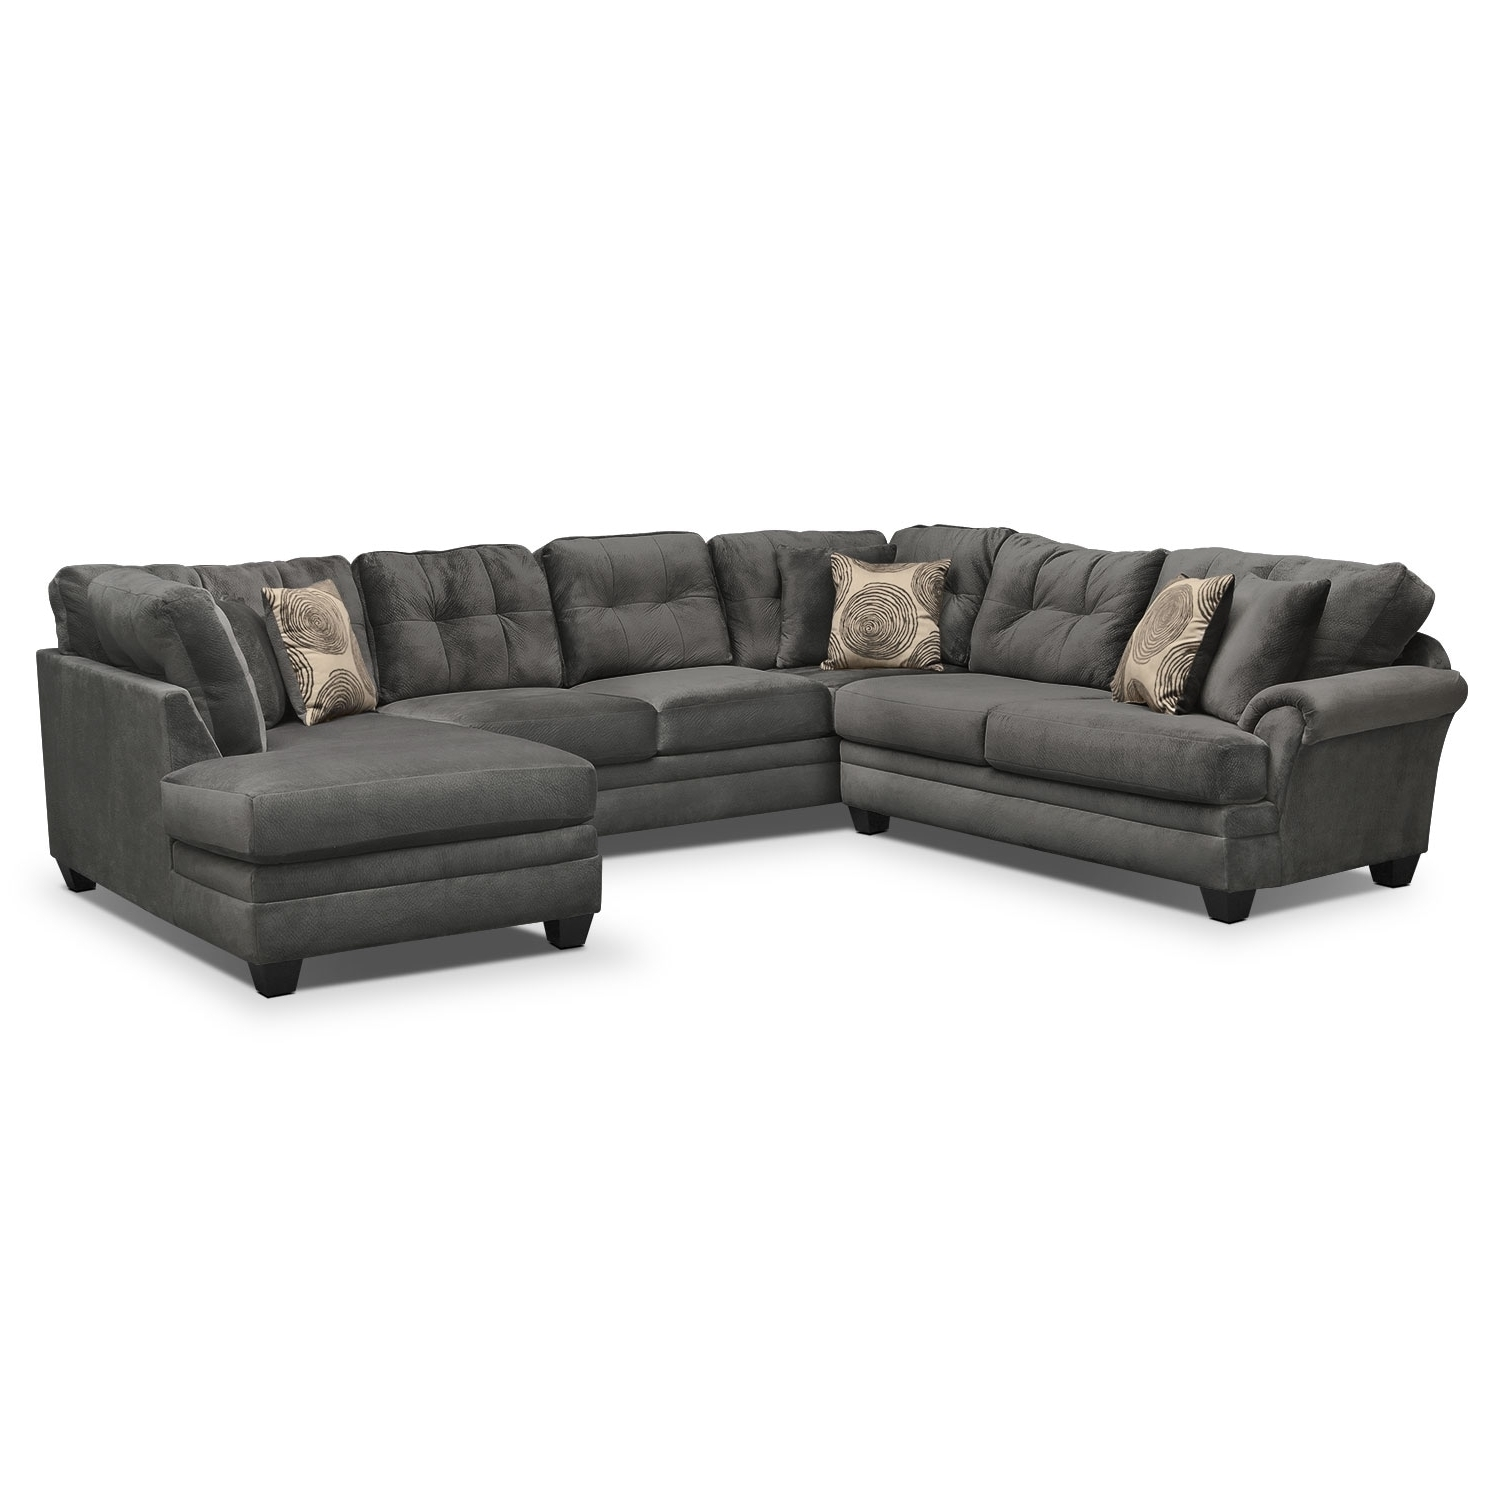 Sectional Sofas At Buffalo Ny Inside Most Current Sectional Couches Buffalo Ny (View 8 of 15)